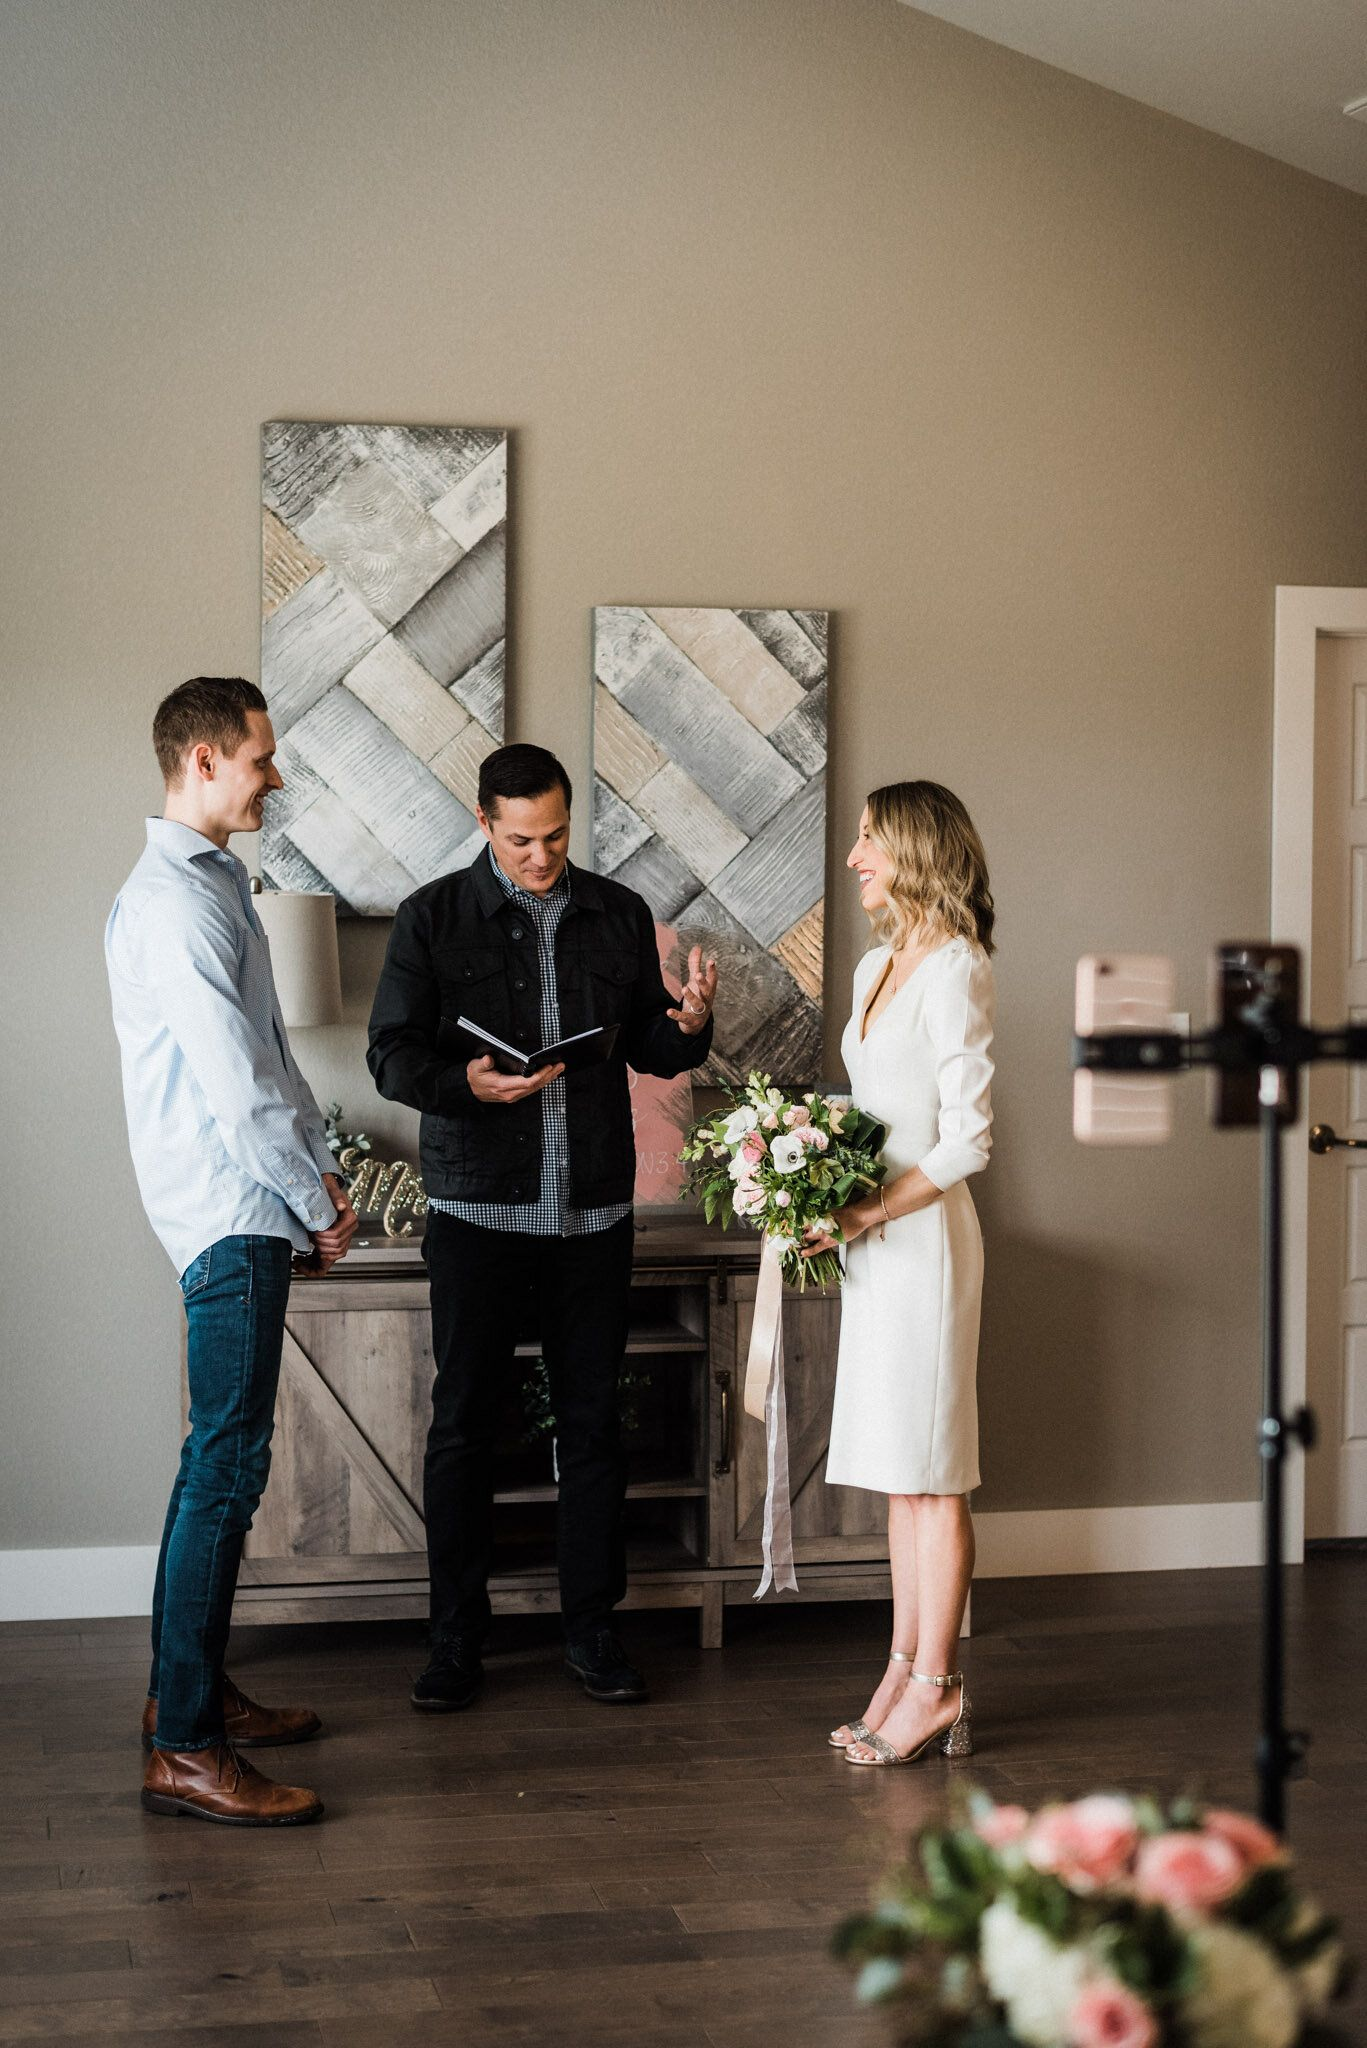 Living Room Virtual Wedding Lindsay Chris Tanner Burge Photography In 2020 Wedding Social Blue Themed Wedding Wedding Ceremony Photos